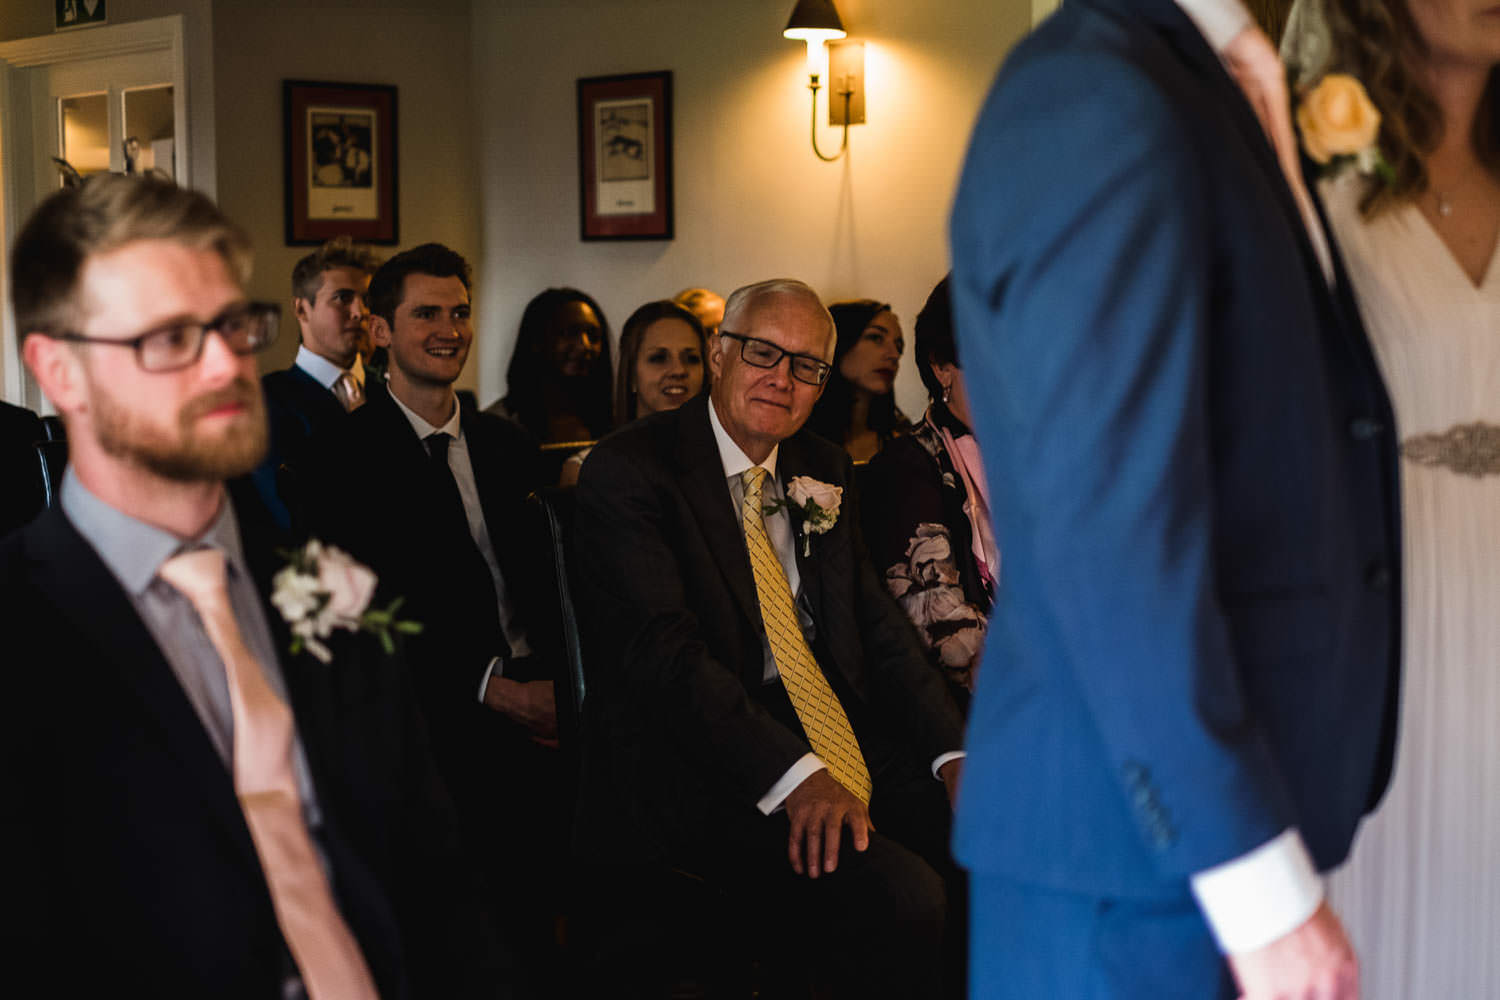 Wedding ceremony photography of the father of the bride